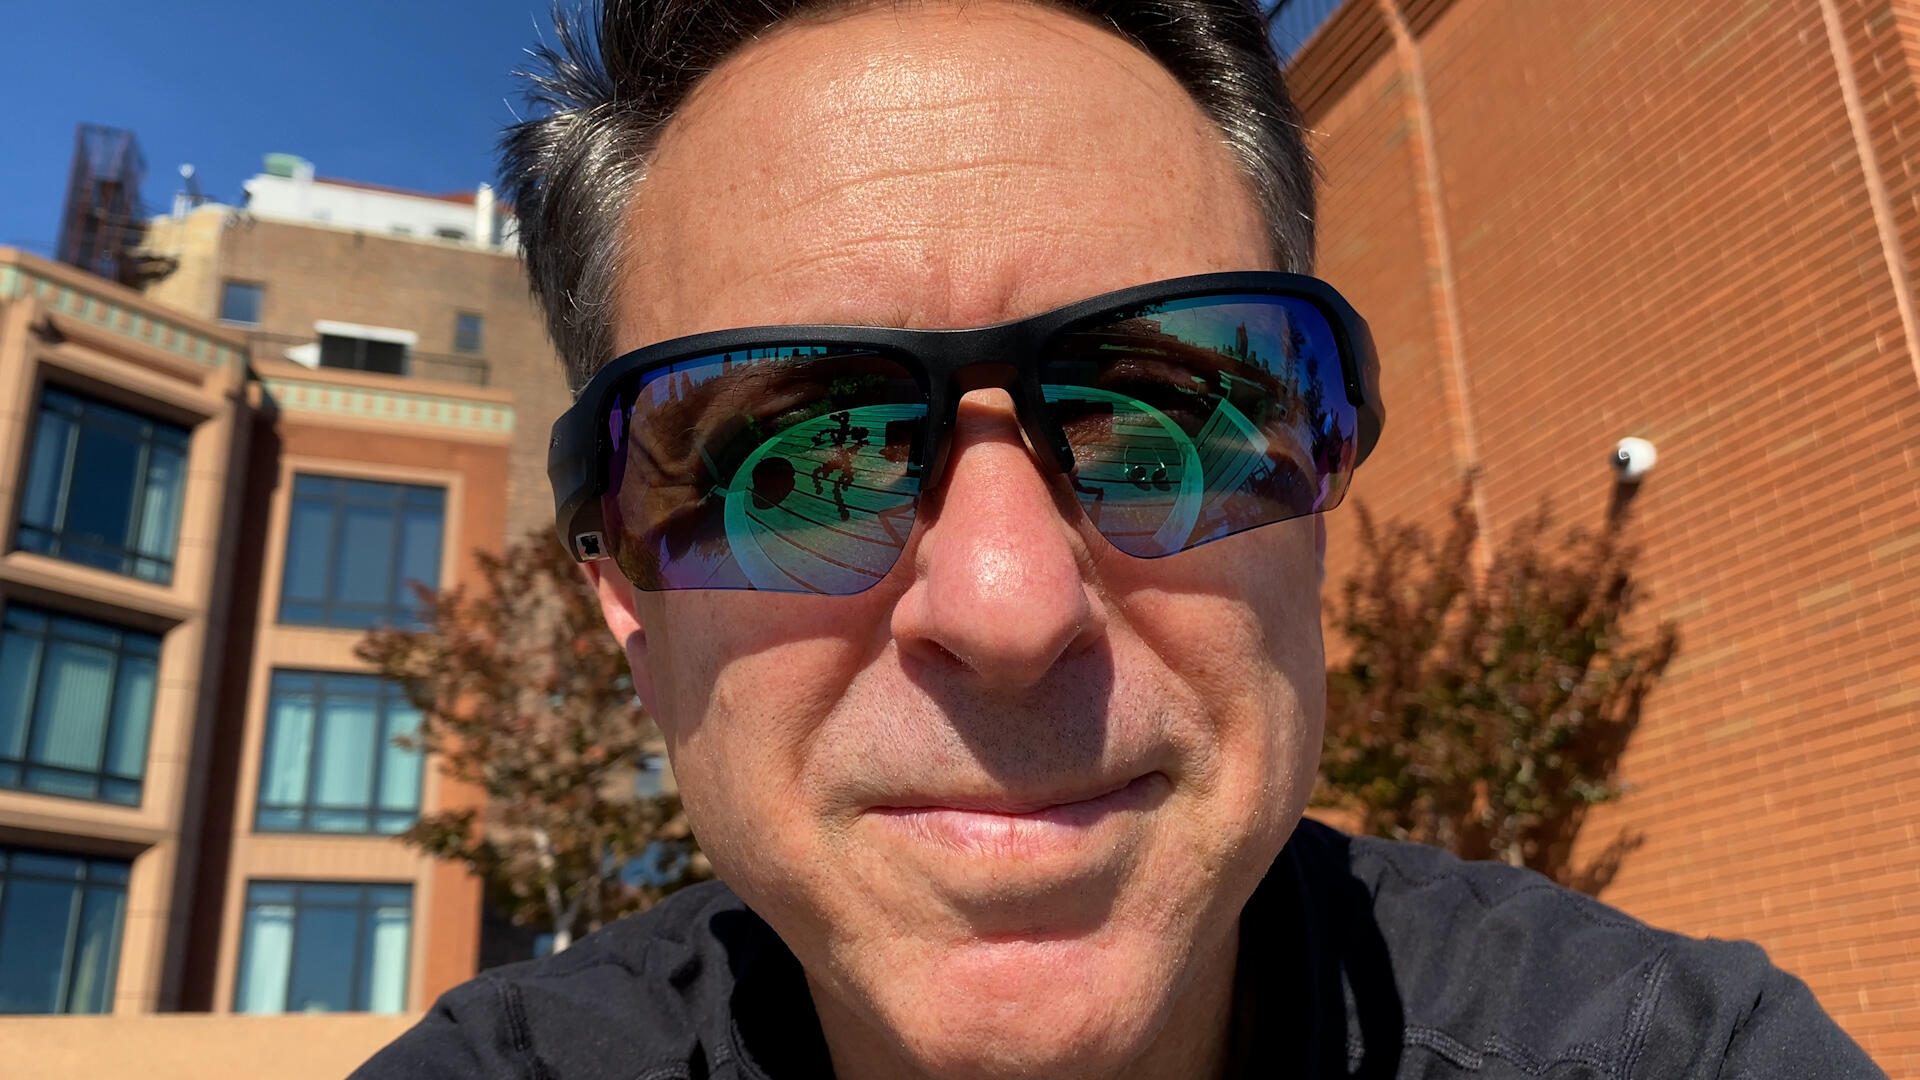 Video: Bose Frames 2.0 audio sunglasses review